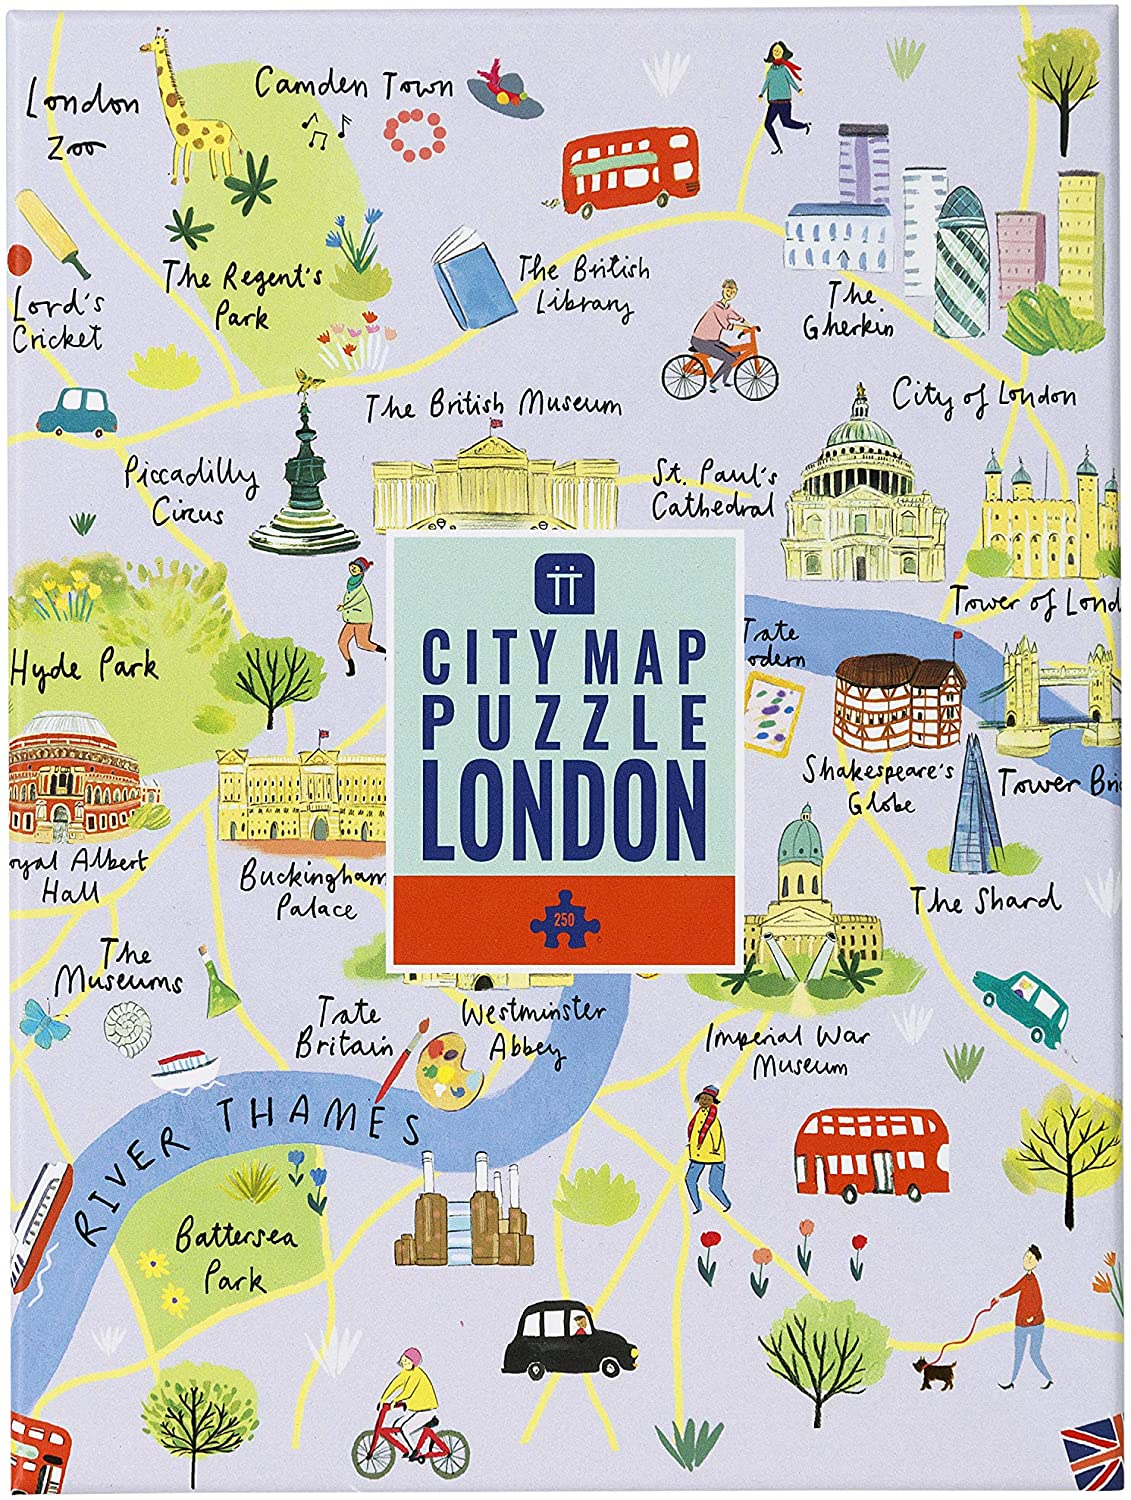 Amazon Com Talking Tables 250 Piece Map Of London Jigsaw Puzzle Poster Illustrated Uk England Landmarks Travel Rainy Day At Home Lockdown Birthday Present Wall Art Toys Games